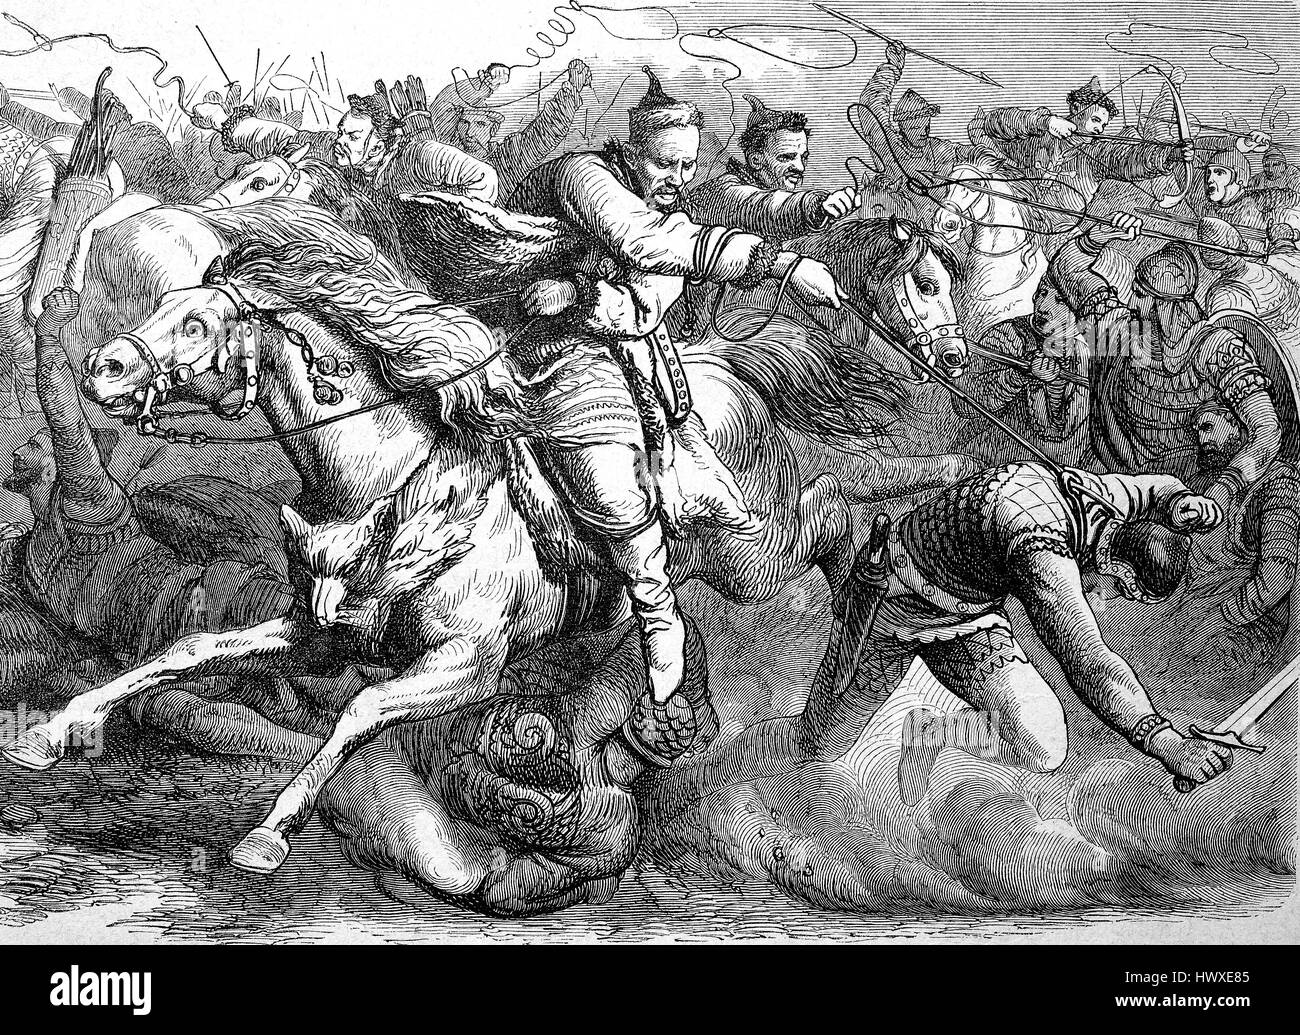 the huns in battle with the alans or alani were an iranian nomadic